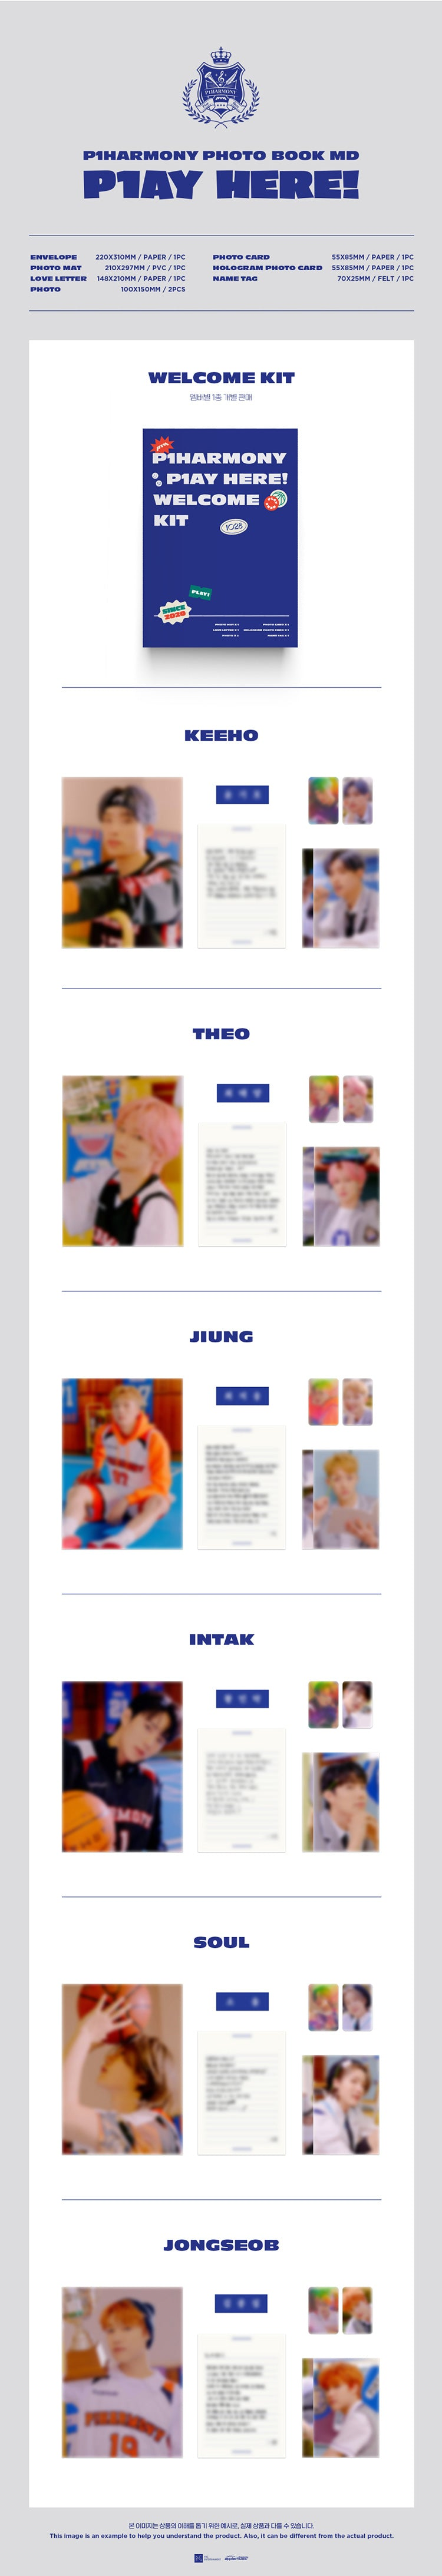 P1Harmony - Photo Book MD - Welcome Kit